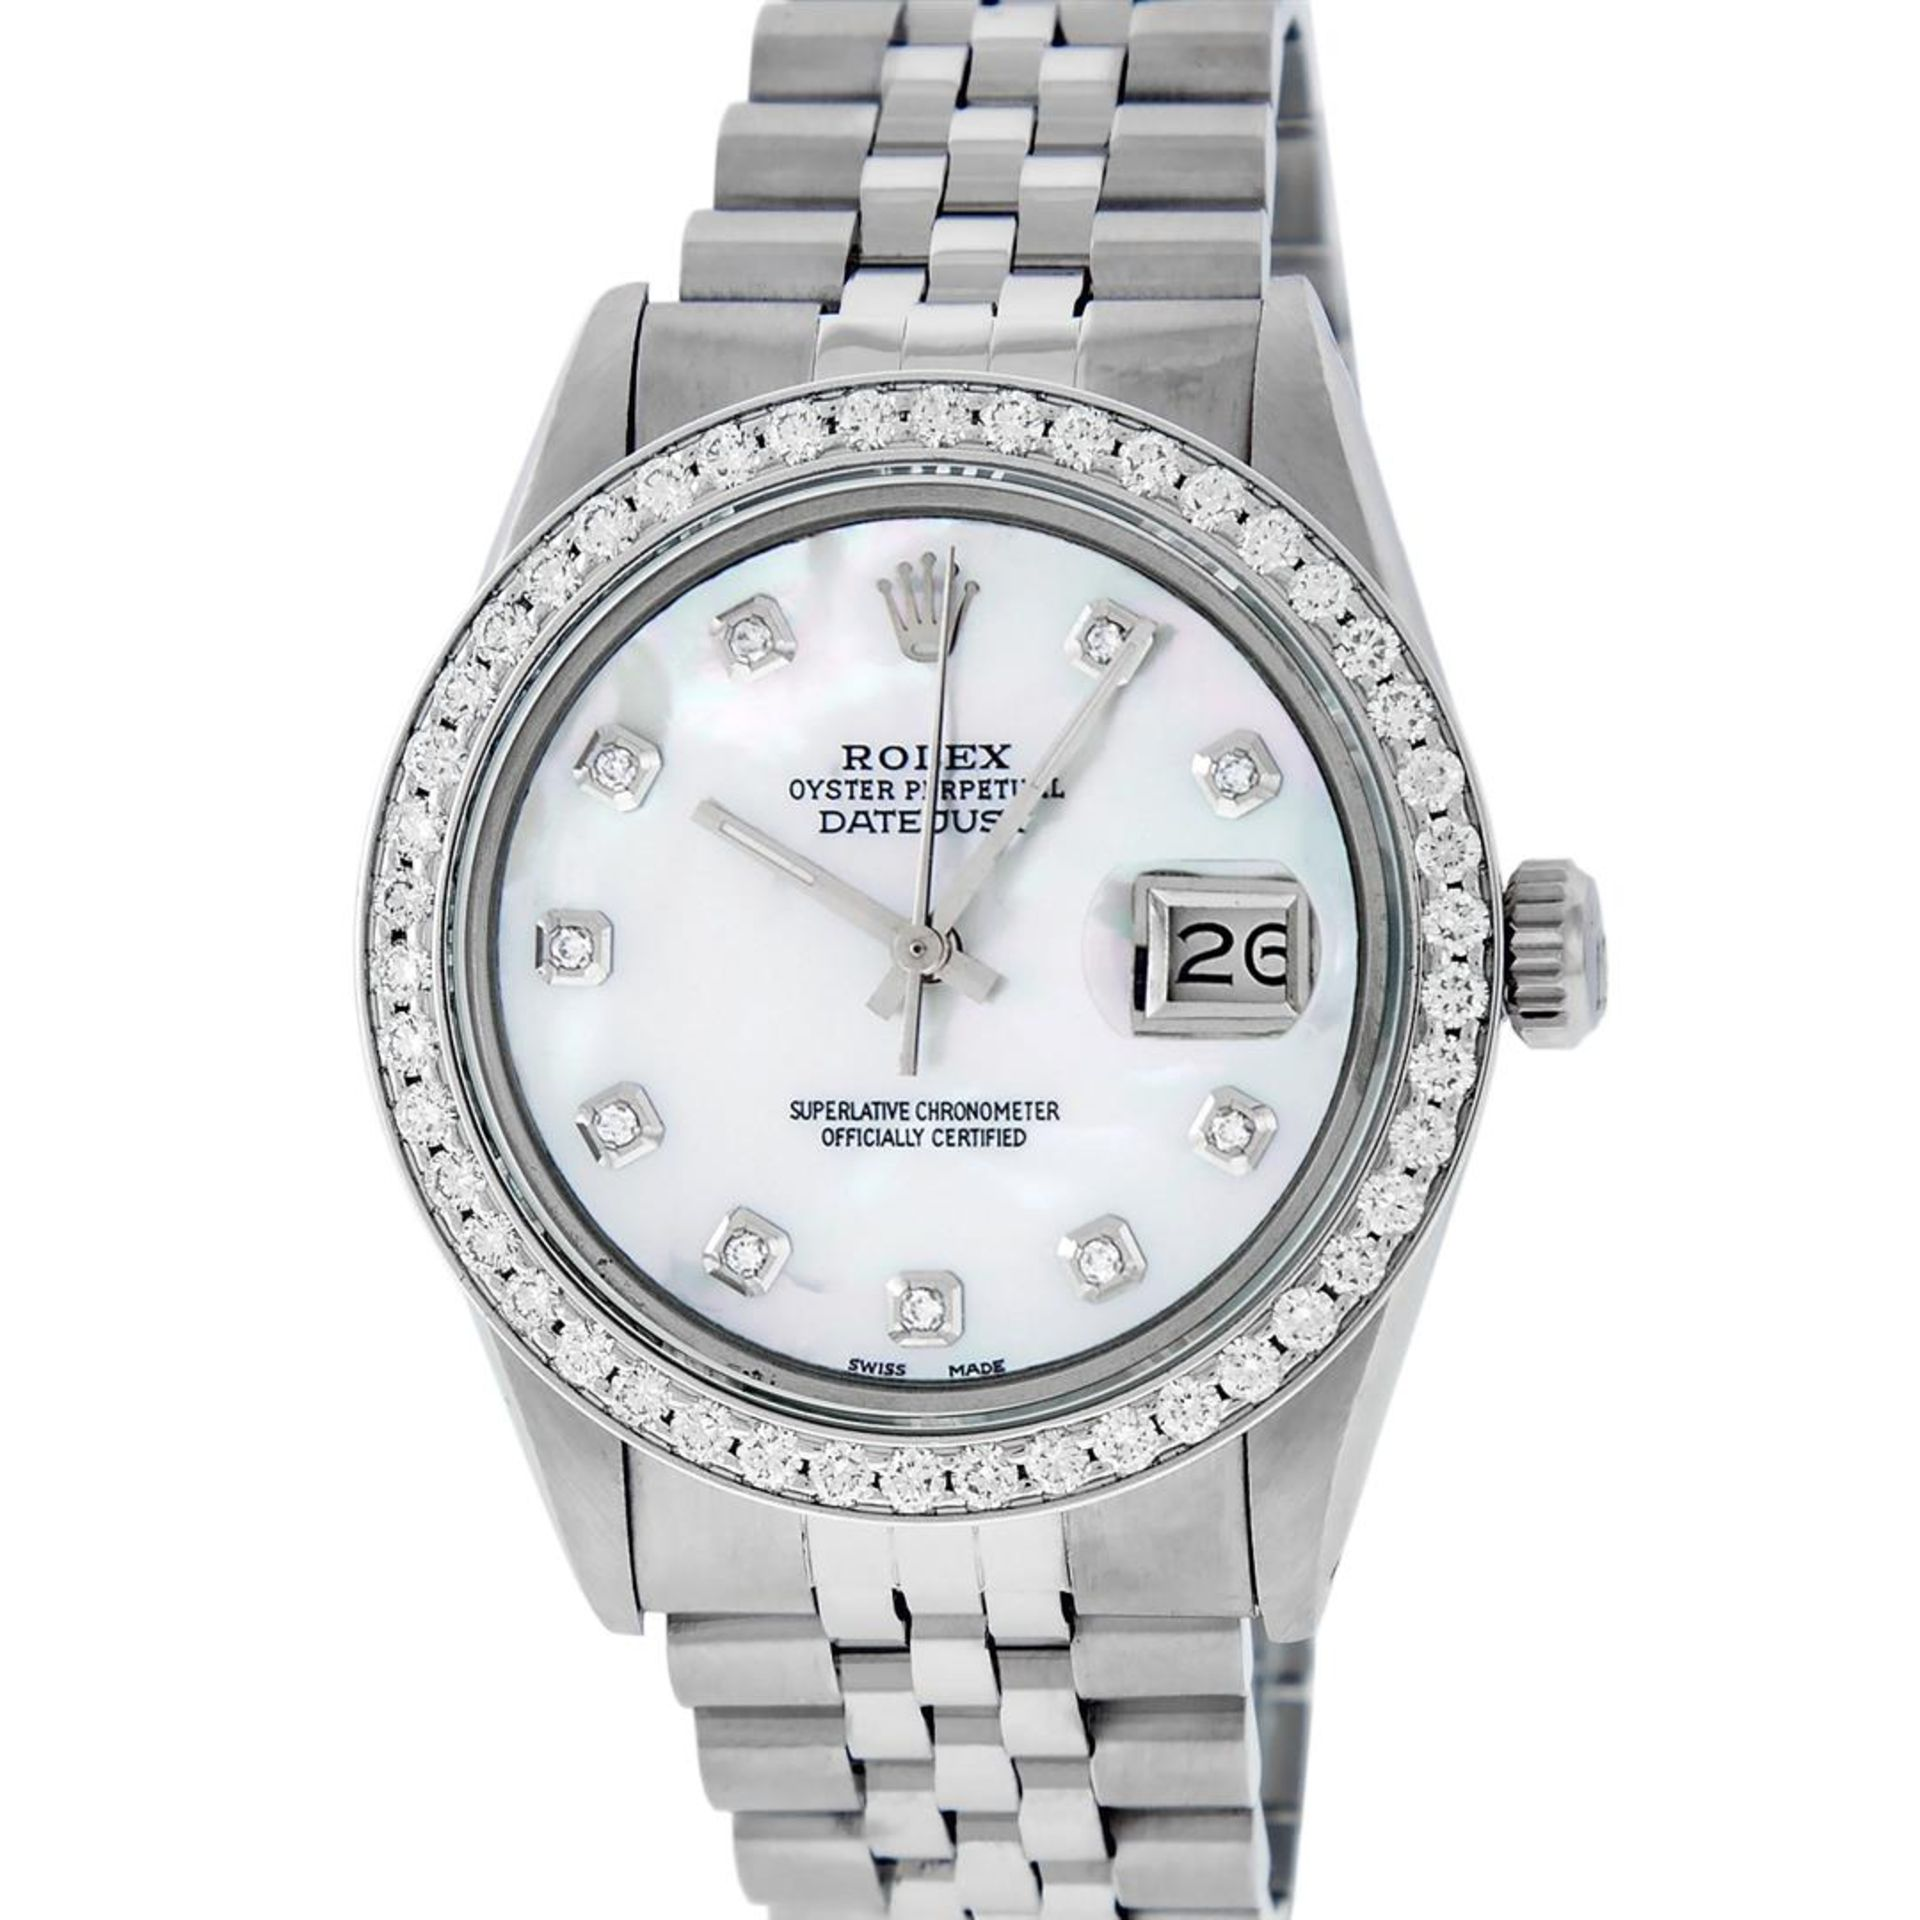 Rolex Mens Stainless Steel Mother Of Pearl Diamond 36MM Datejust Wristwatch - Image 2 of 8